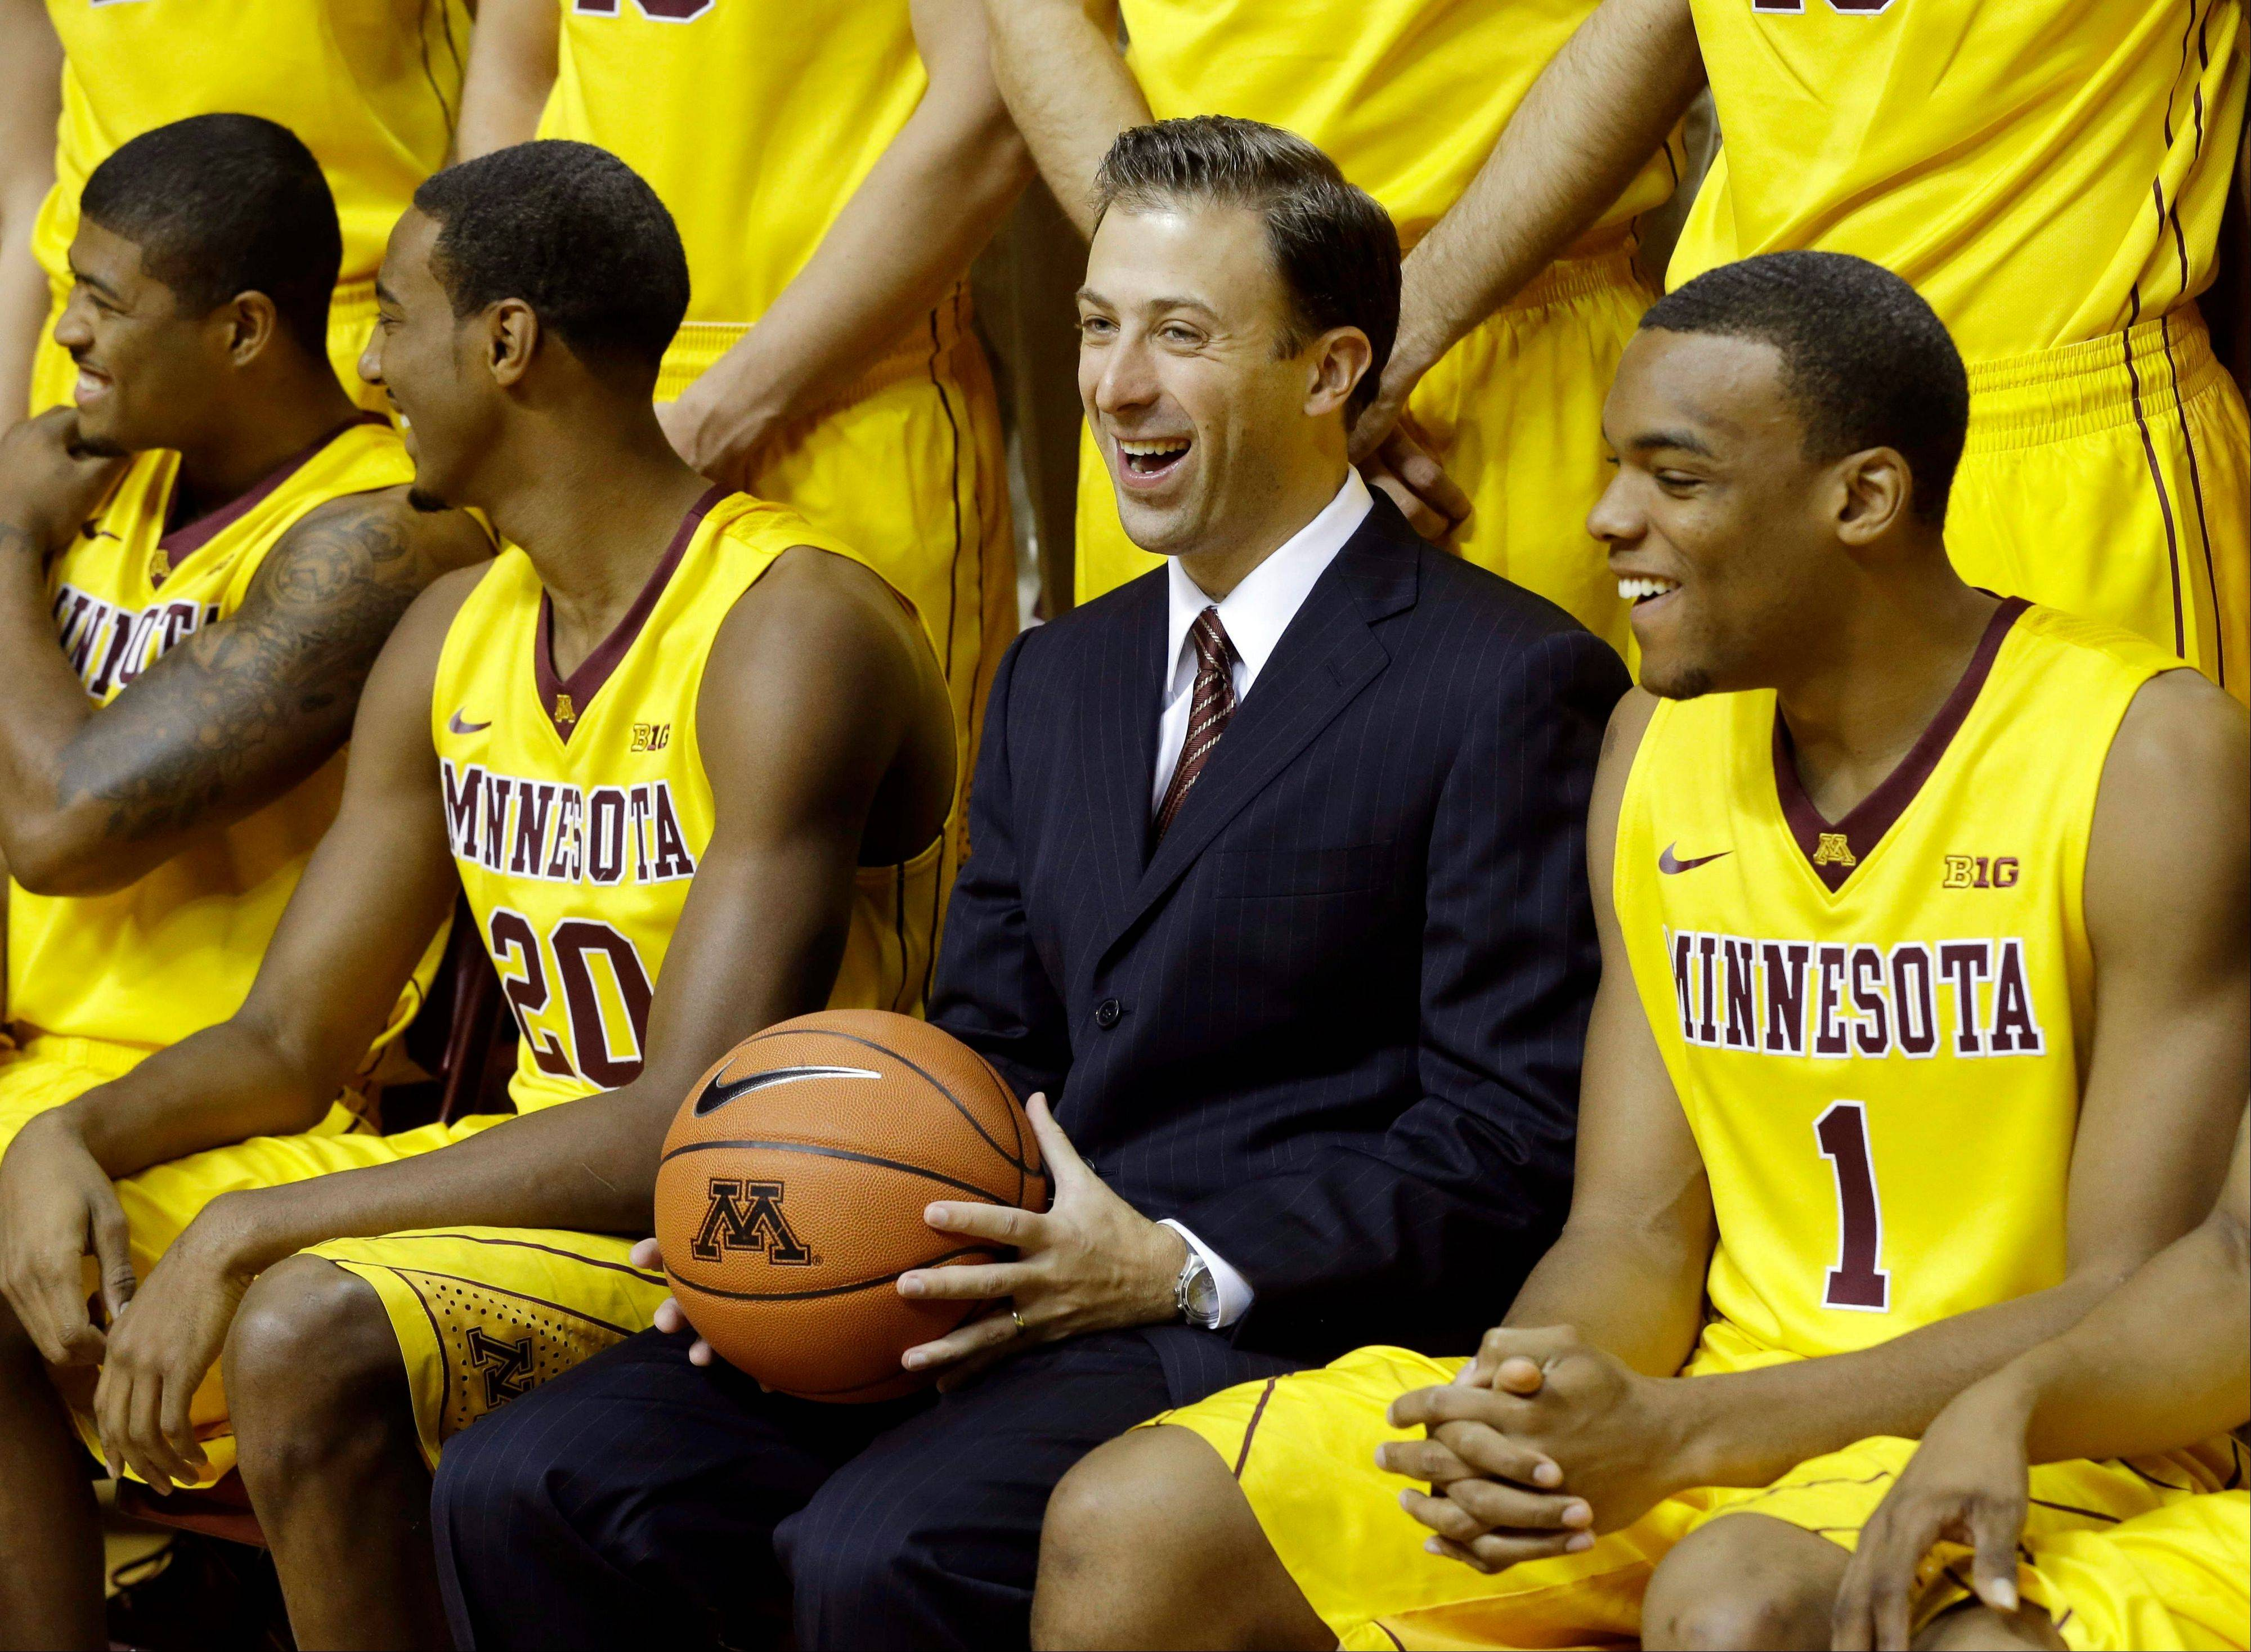 New Minnesota men�s basketball coach Richard Pitino enjoys a laugh along with, from left, Maverick Ahanmisi, Austin Hollins and Andre Hollins during the setup for the formal team portrait Monday in Minneapolis.